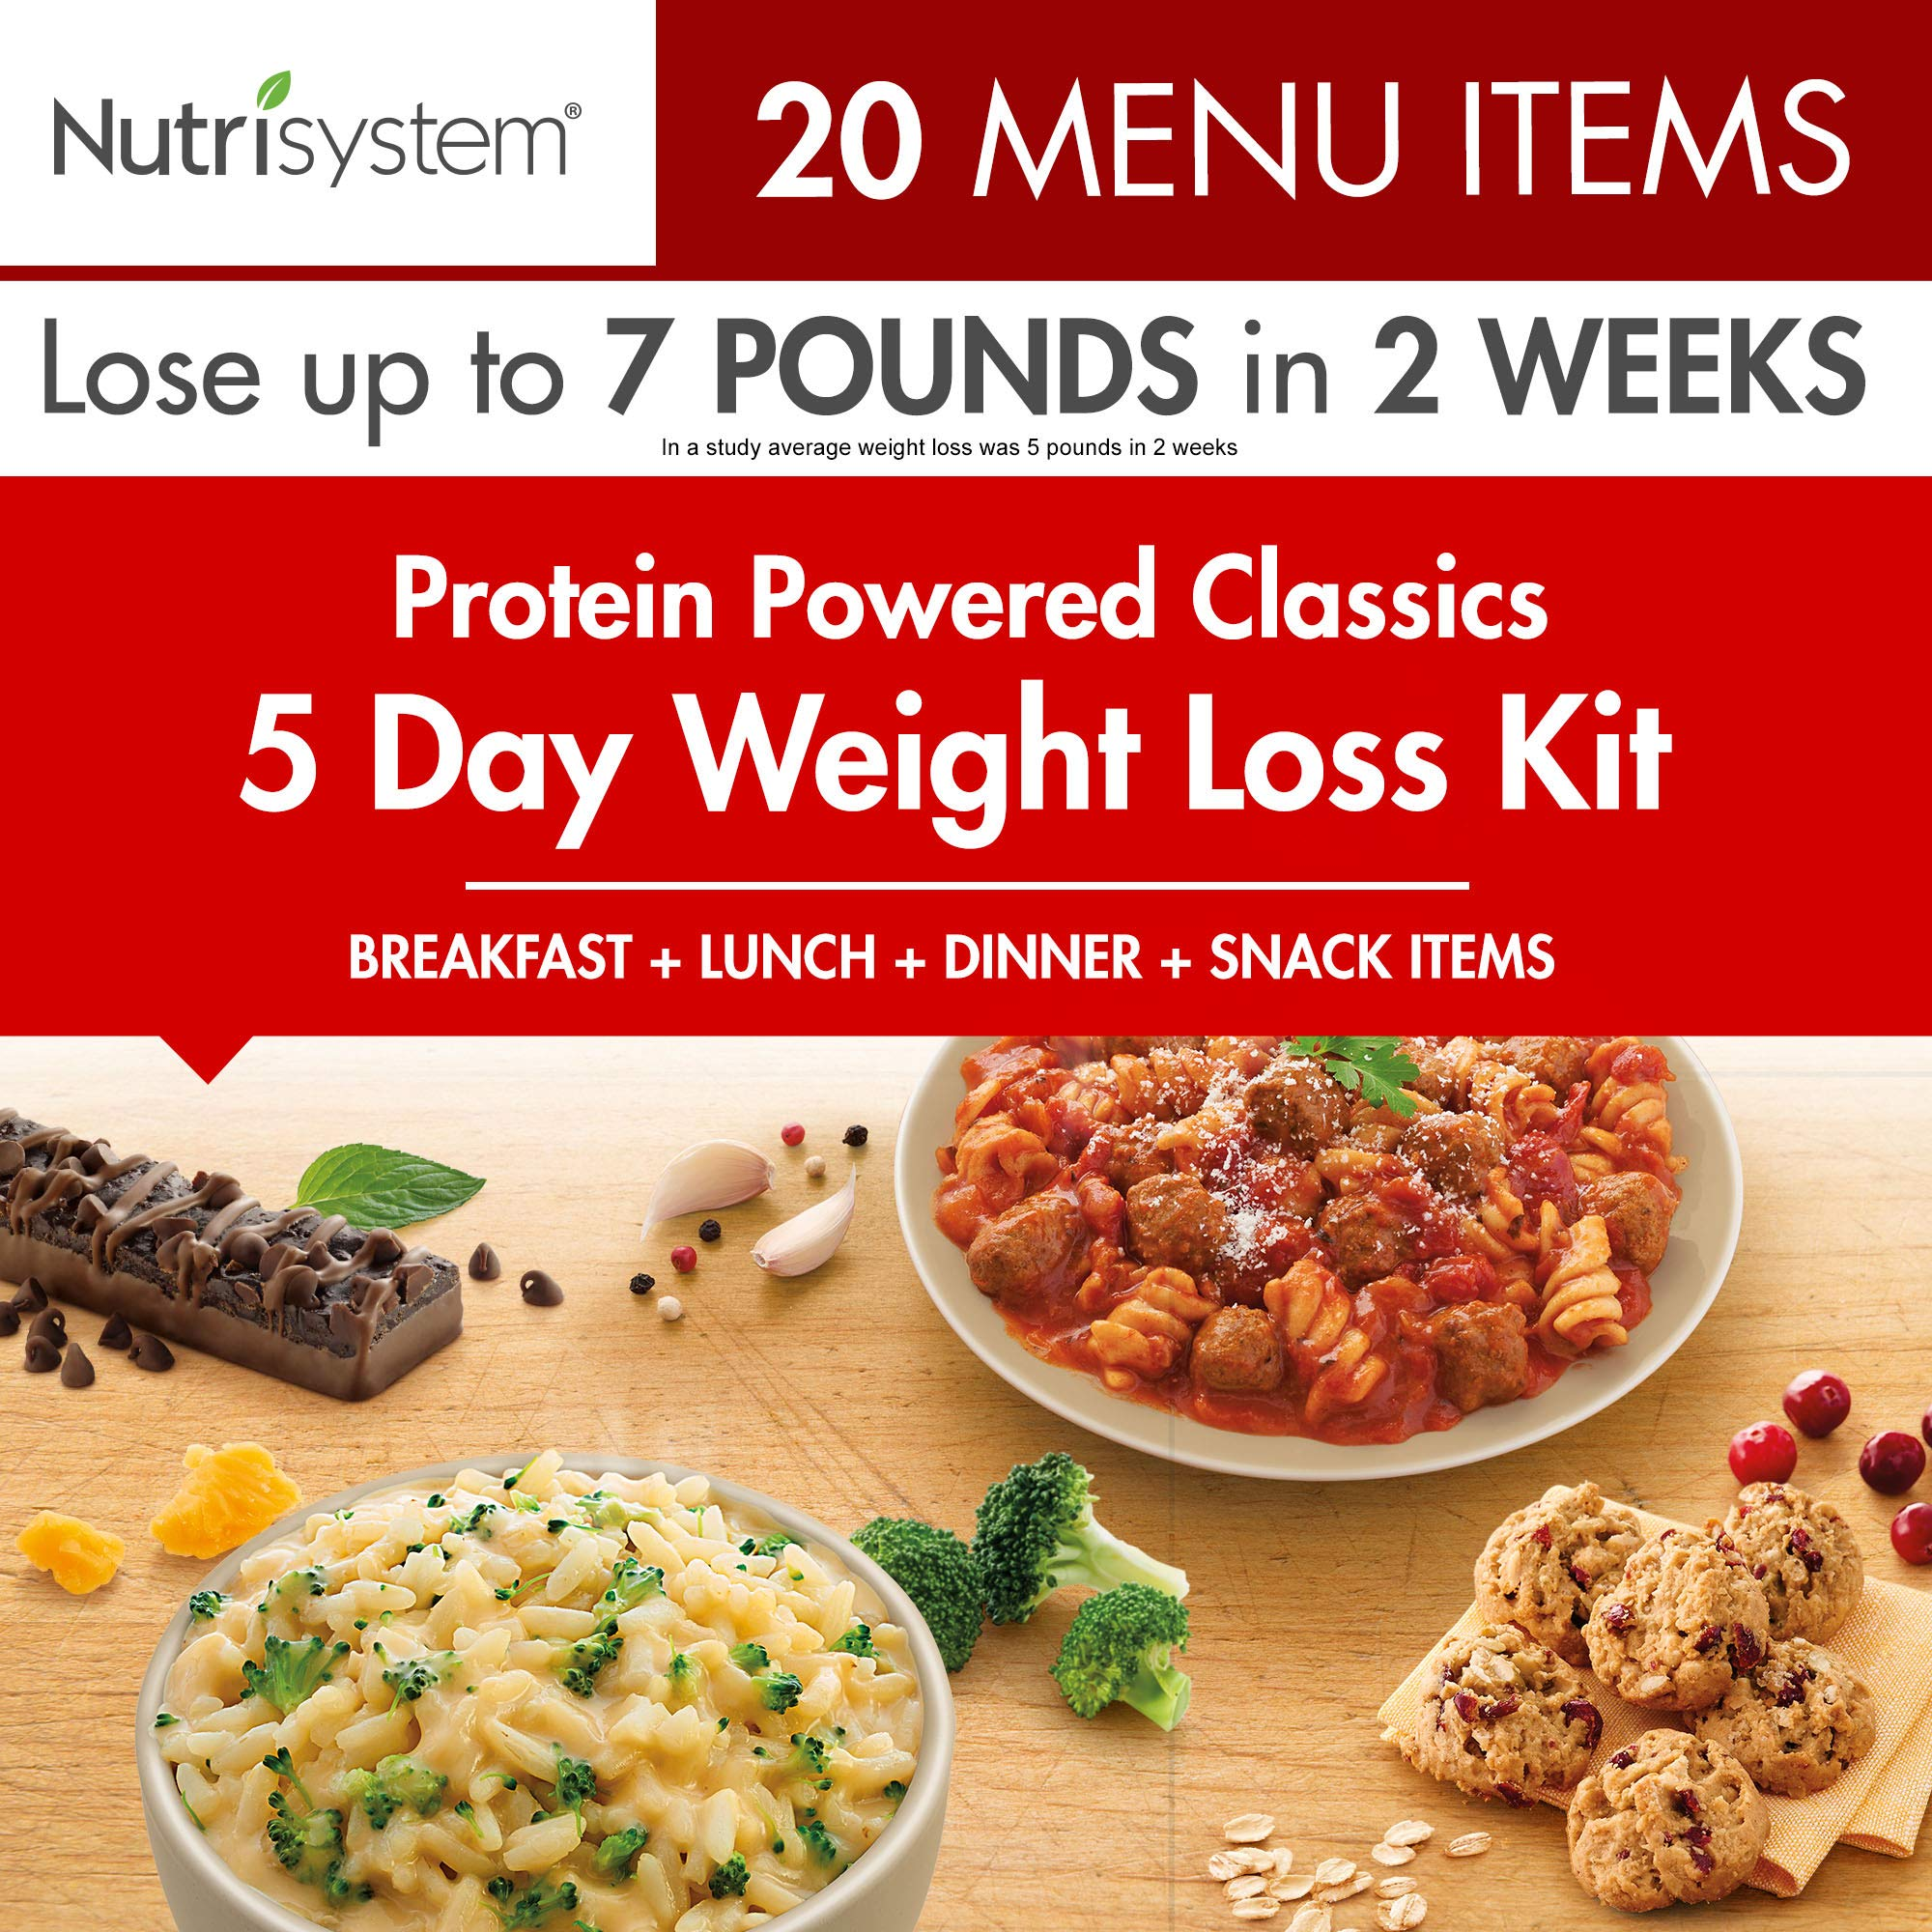 Nutrisystem 5 Day Weight Loss Kit, Protein Powered by Nutrisystem